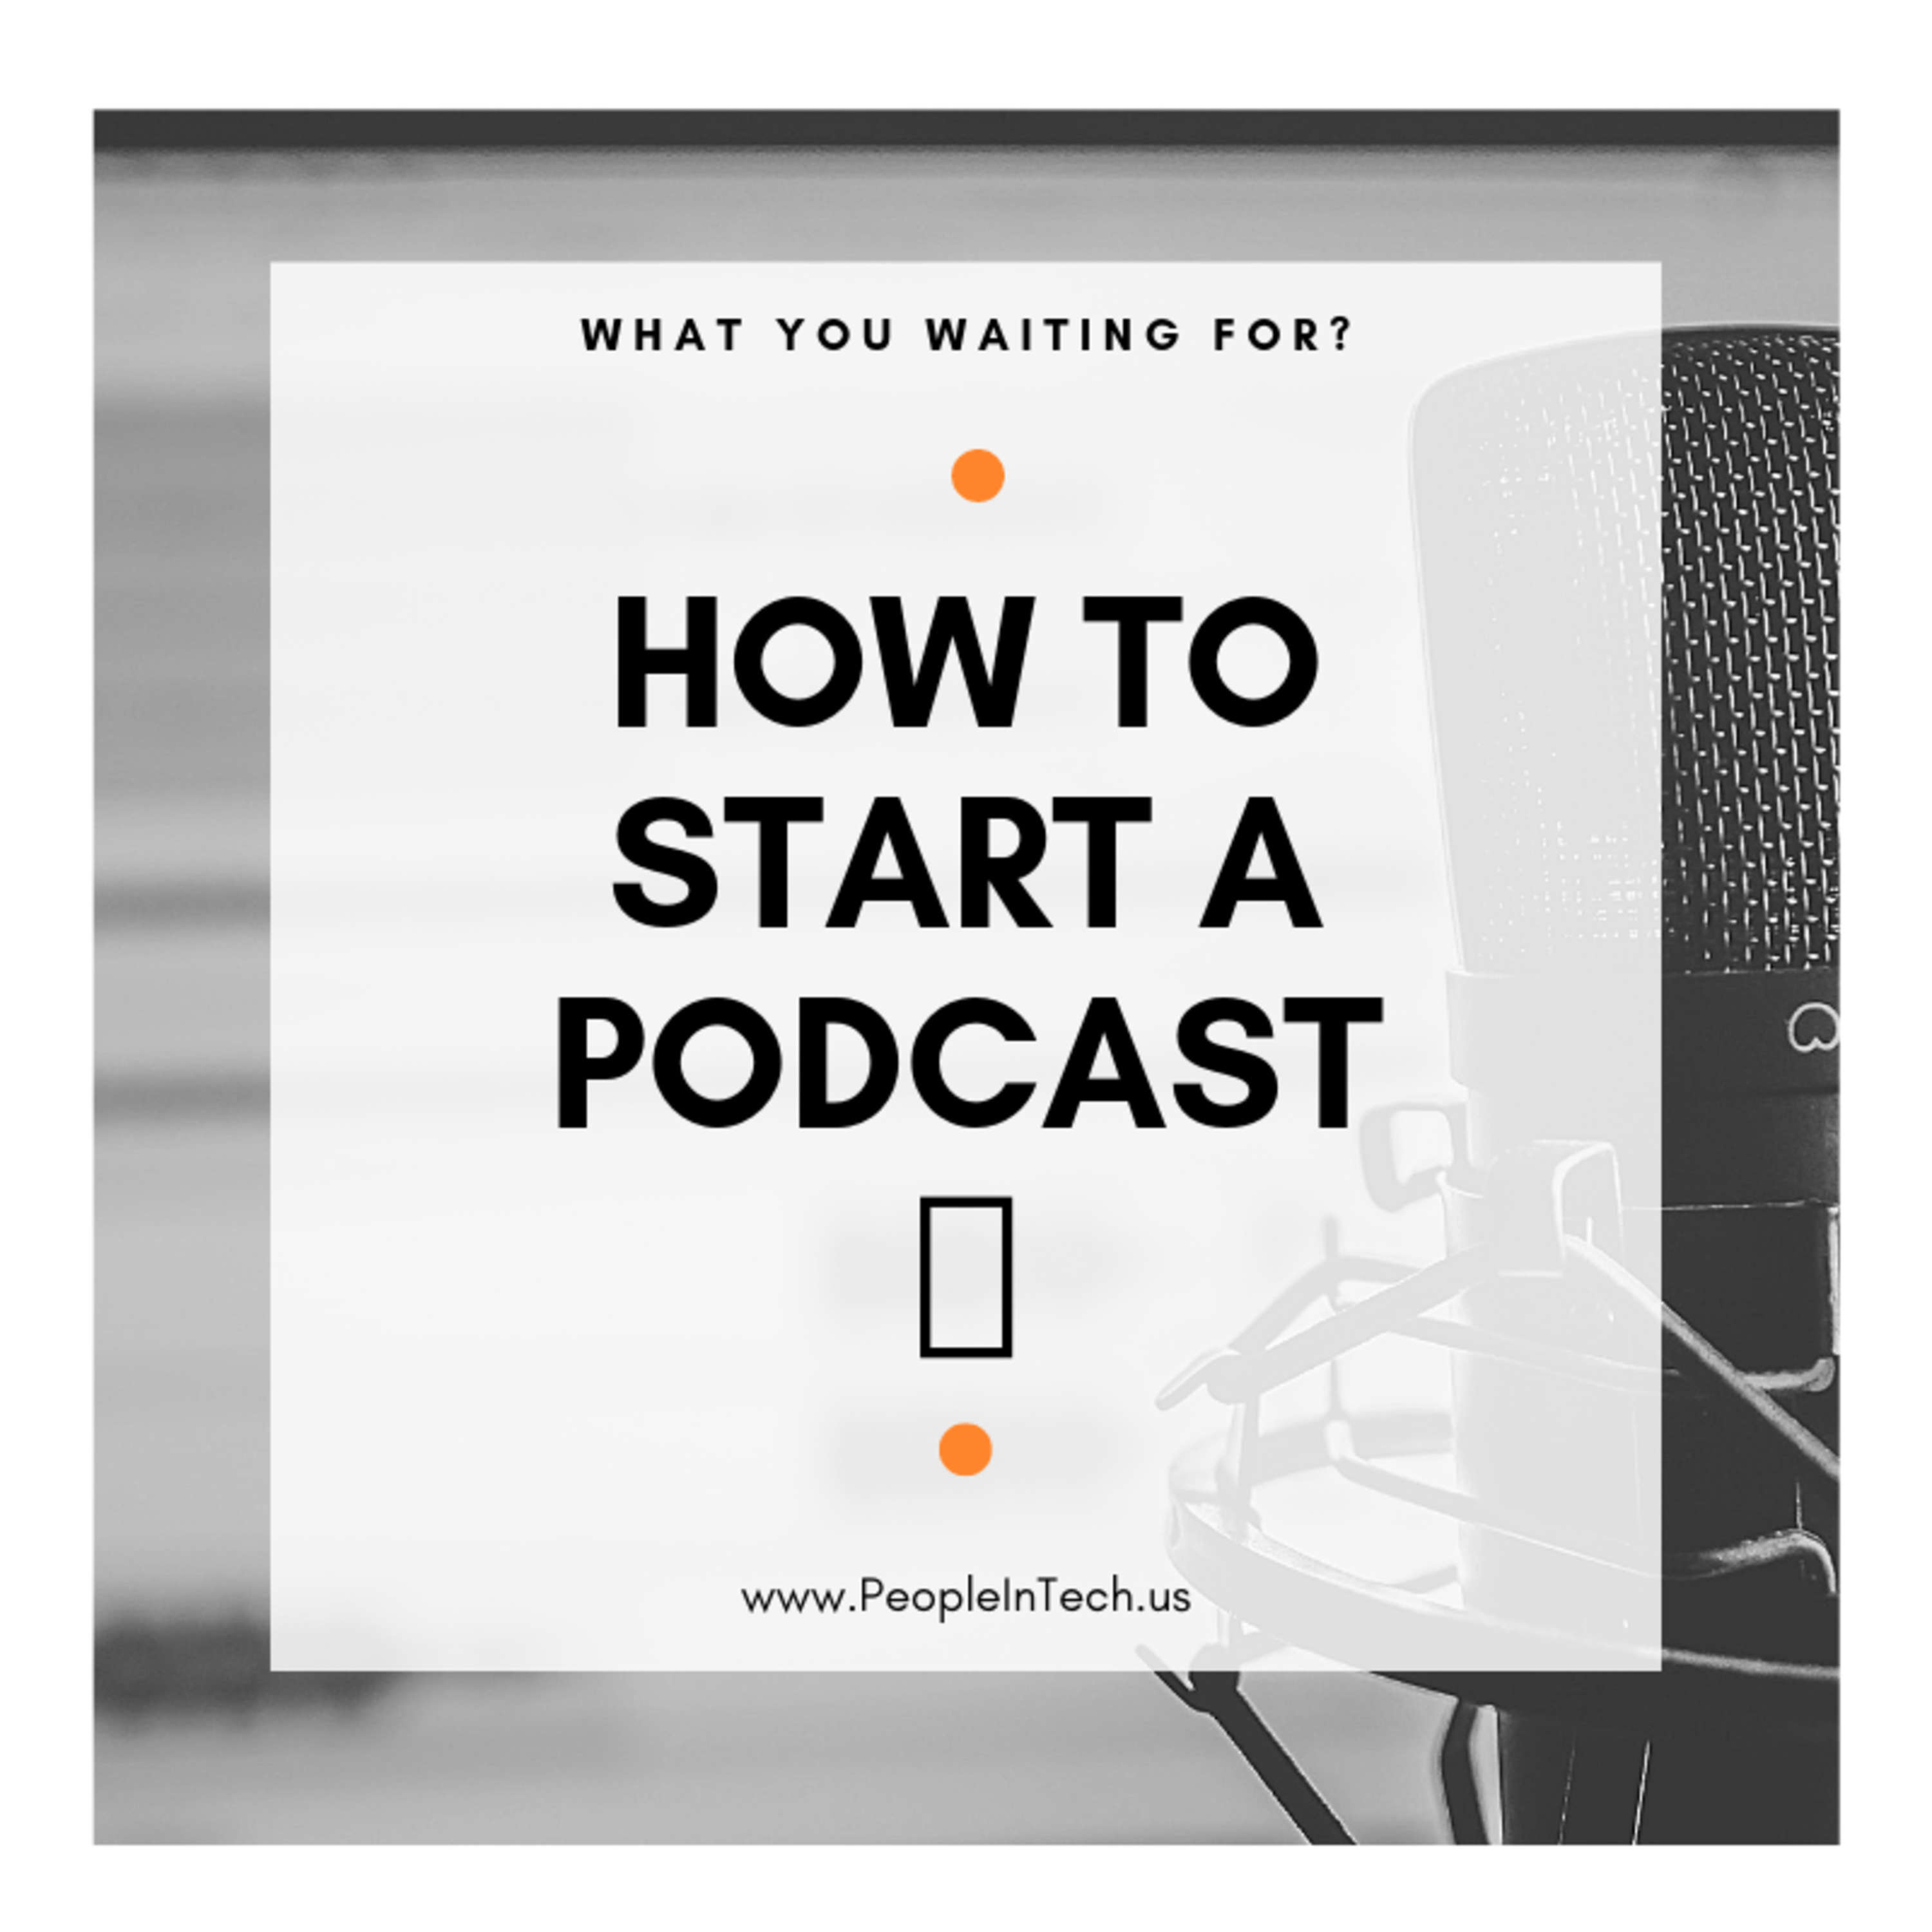 How to Start a Podcast - 06/30/19